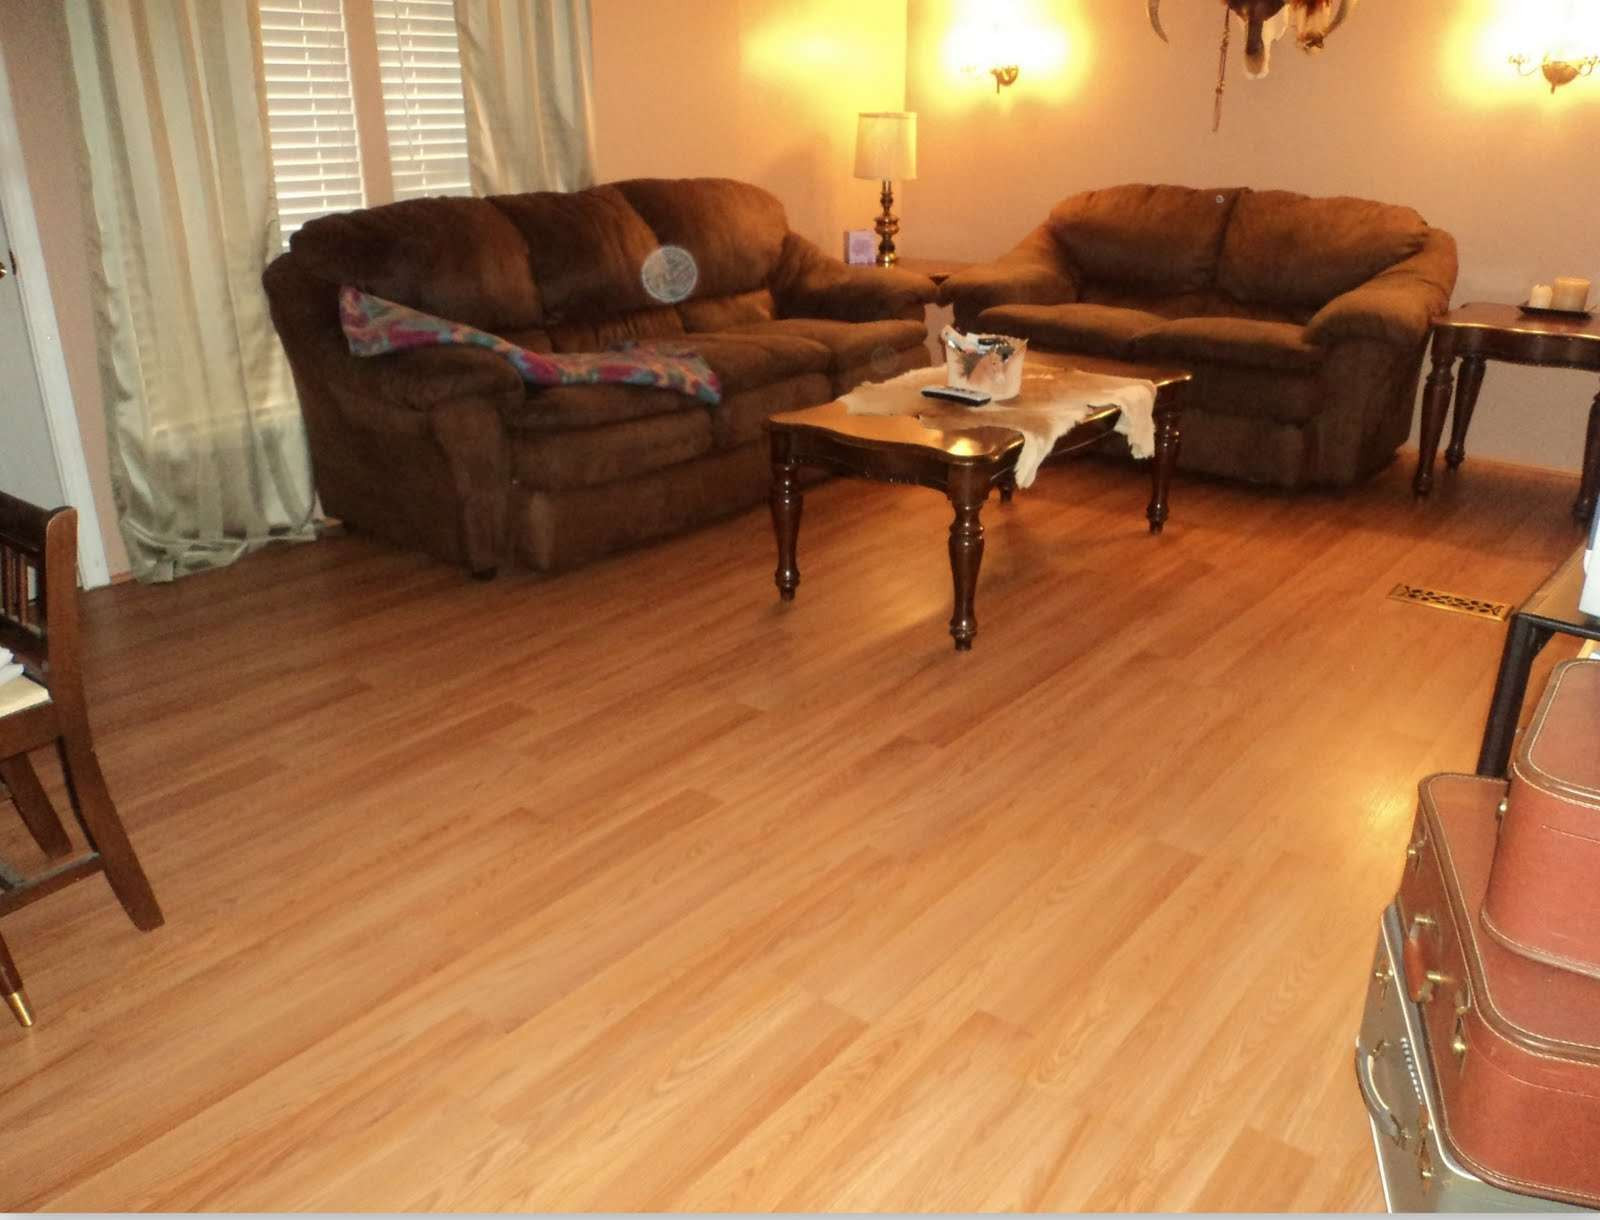 Best ideas about Living Room Flooring . Save or Pin living room decorating design Living Room Flooring Ideas Now.